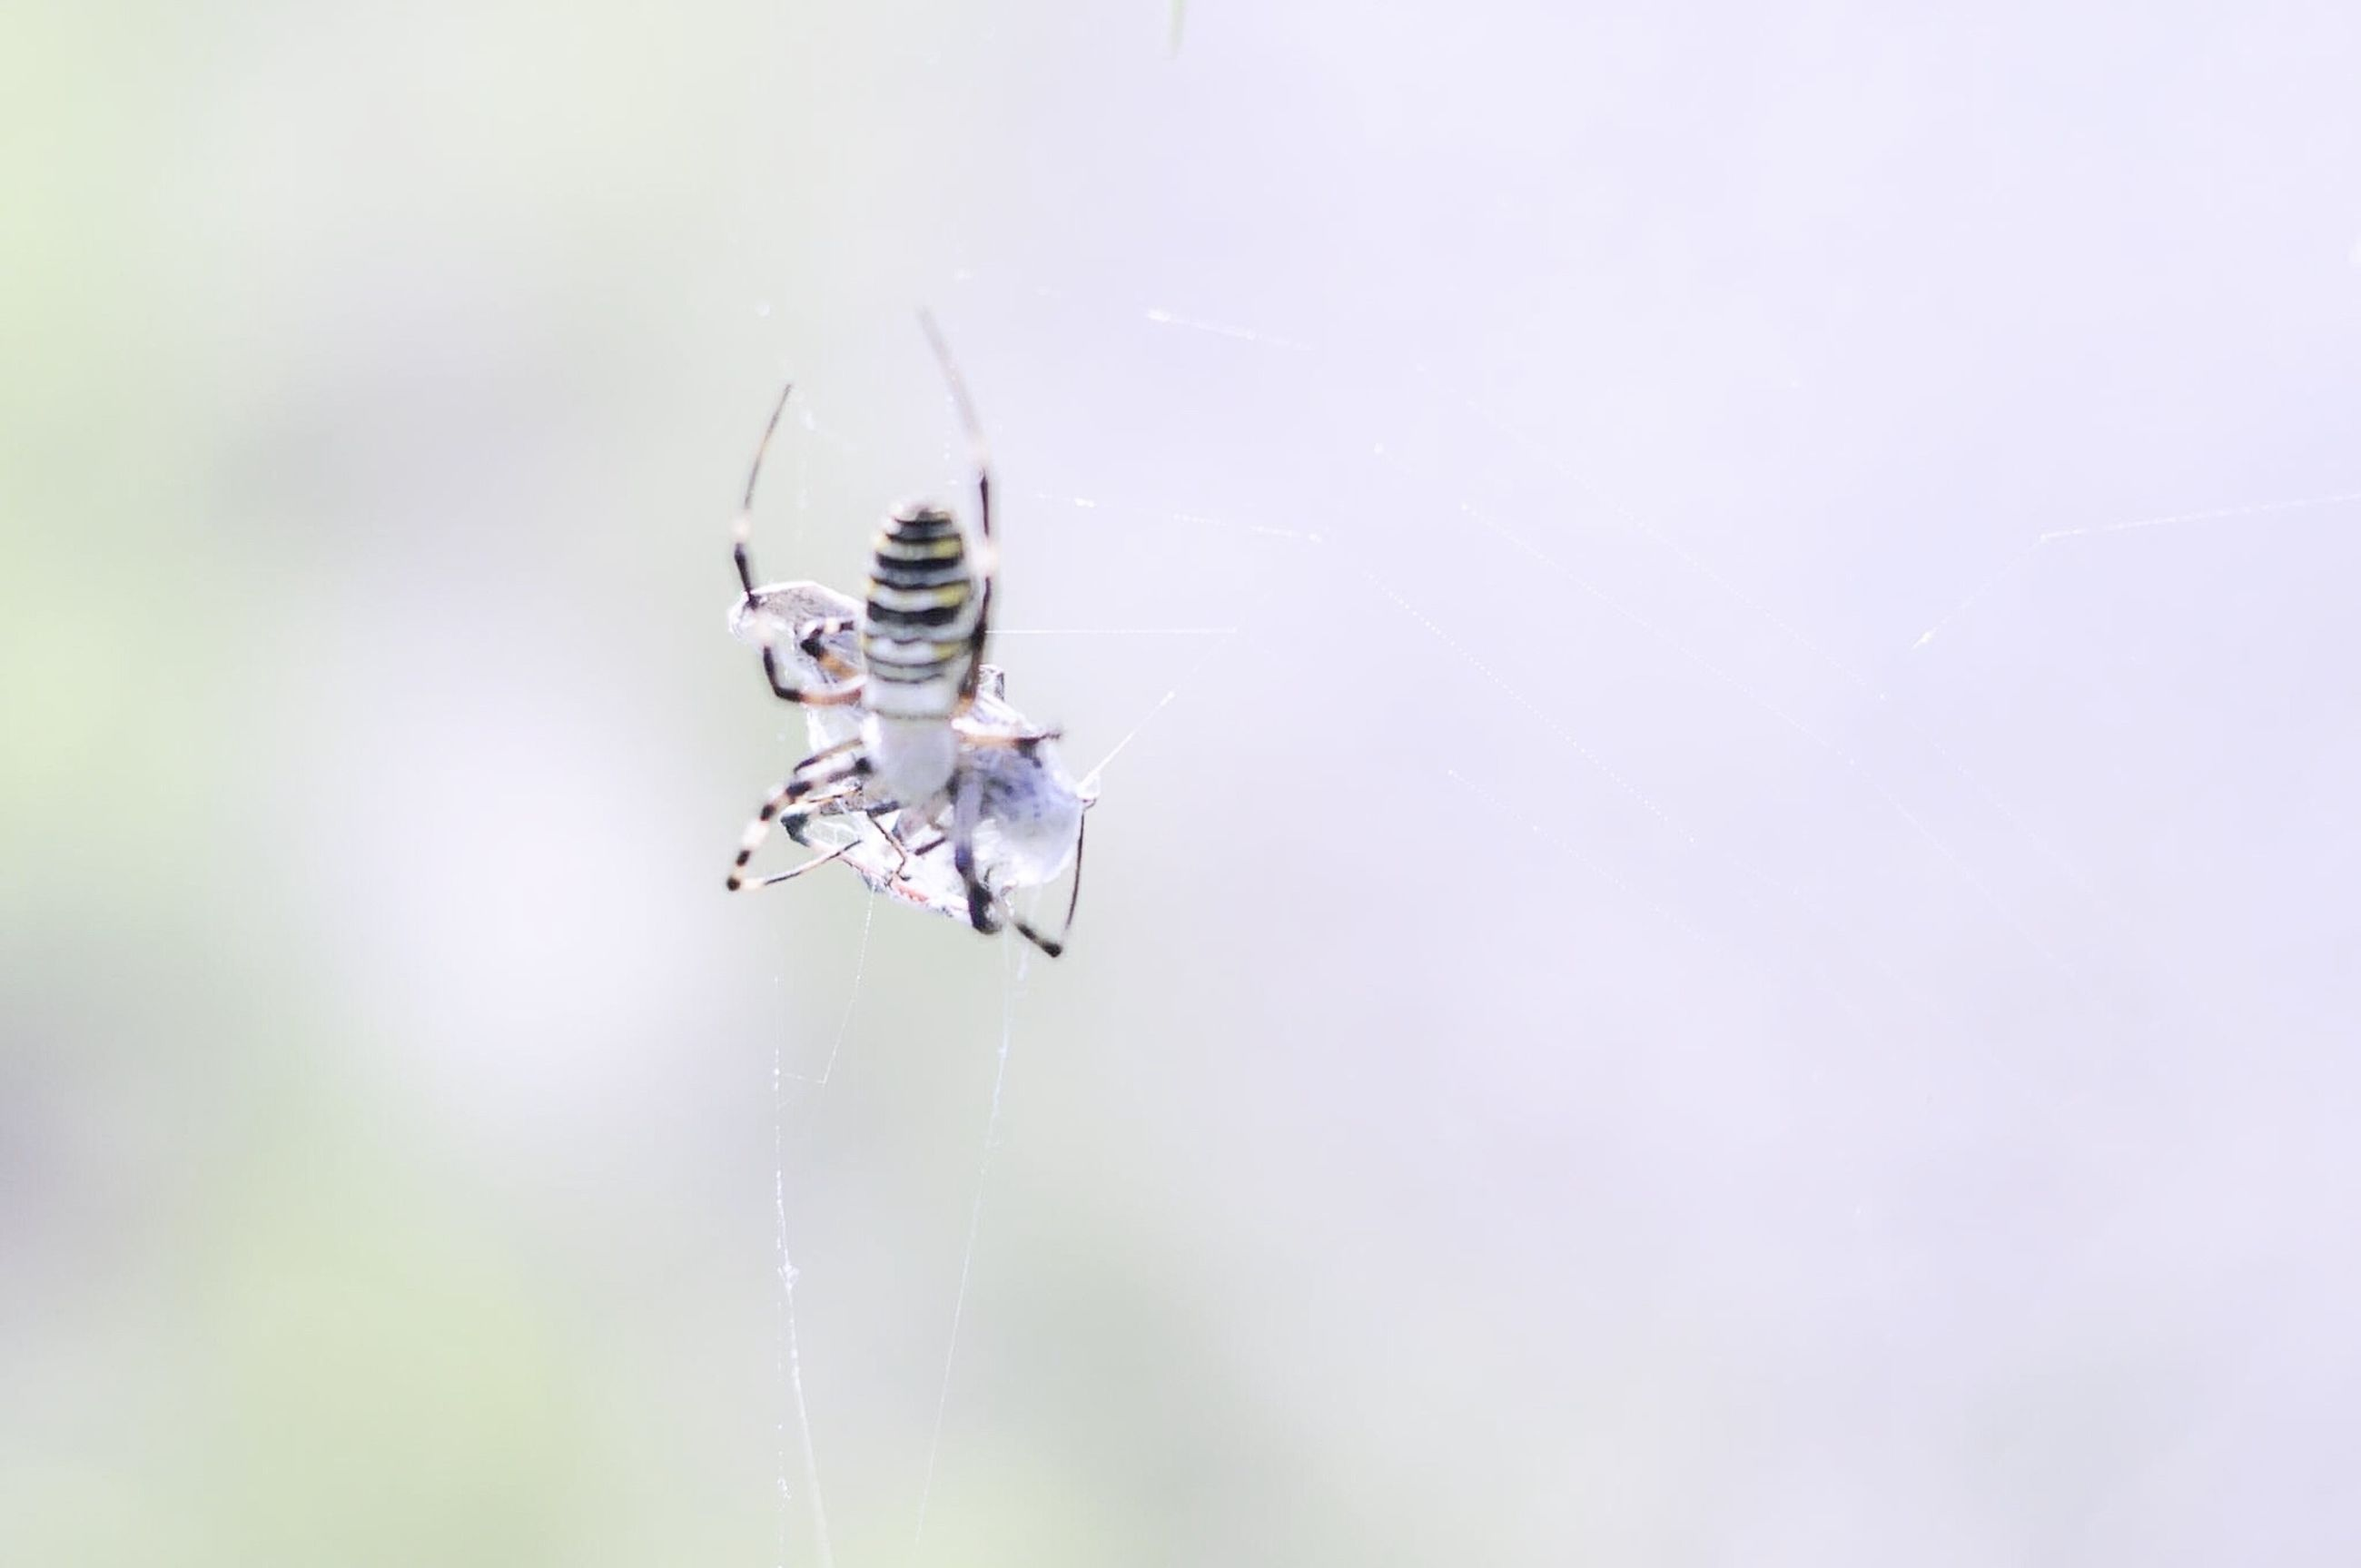 animal themes, insect, one animal, animals in the wild, mid-air, low angle view, wildlife, motion, full length, flying, day, copy space, nature, outdoors, spider, no people, two animals, selective focus, close-up, focus on foreground